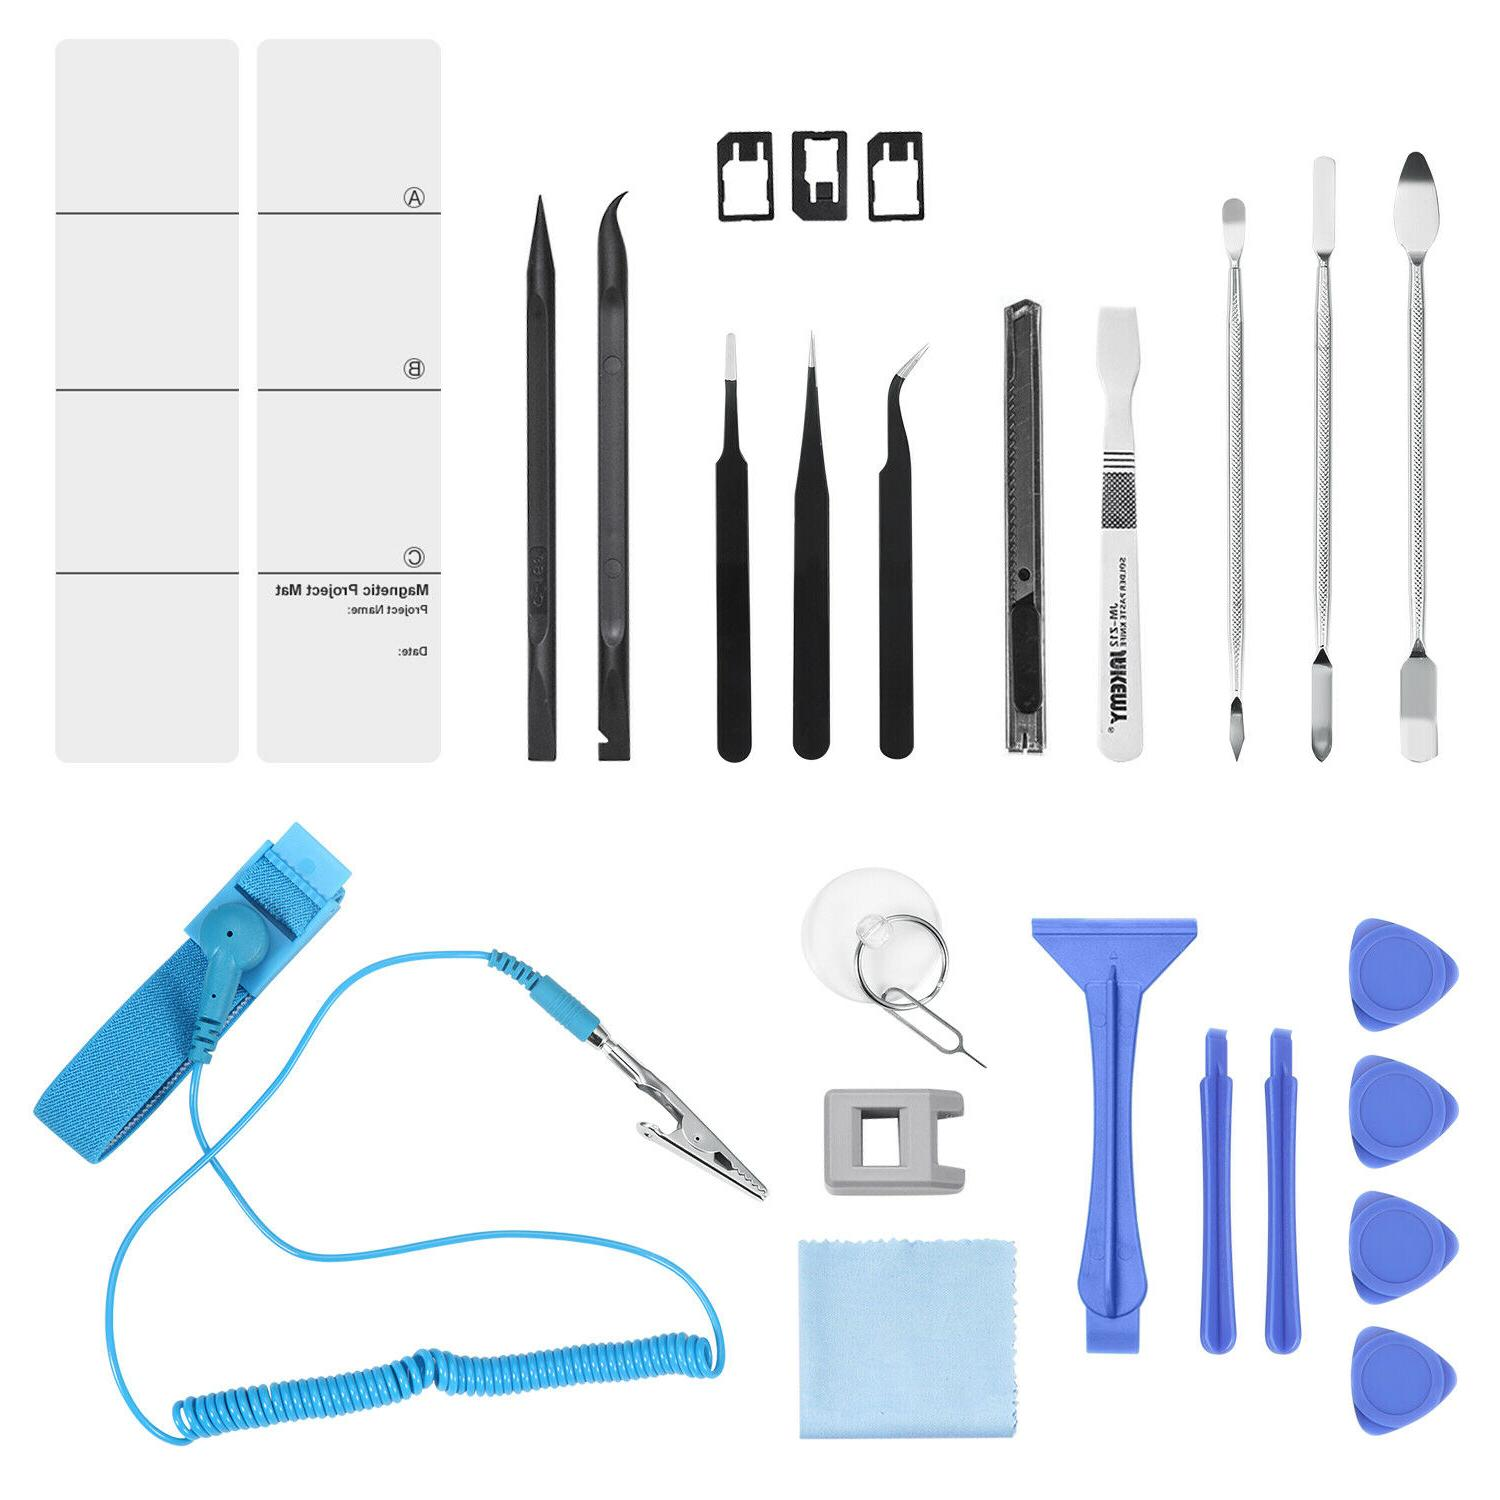 ORIA Magnetic Precision Screwdriver Kit Set PC